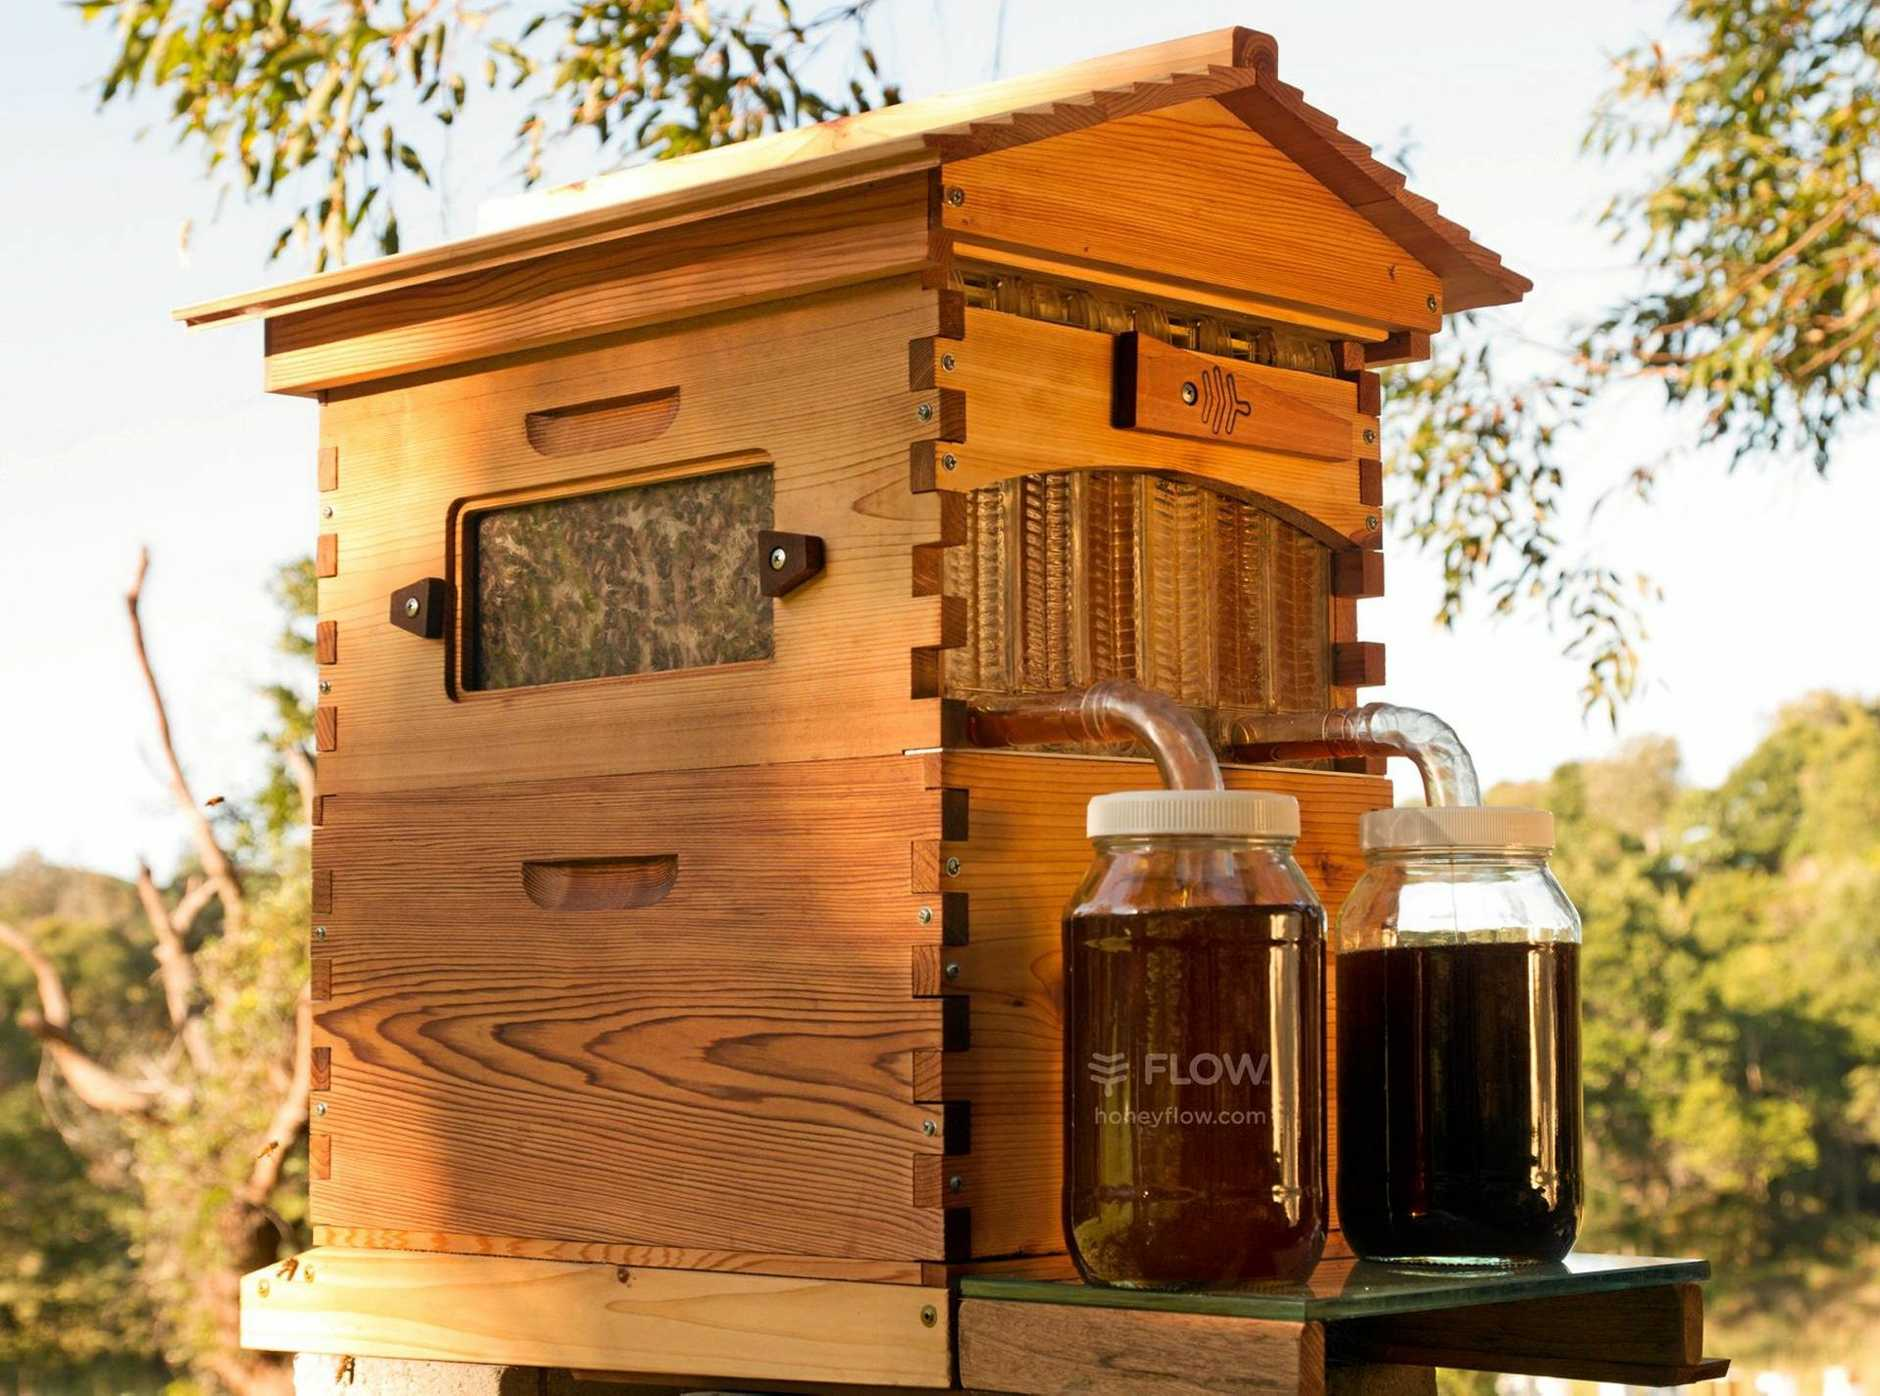 Flow hive made from western red cedar.